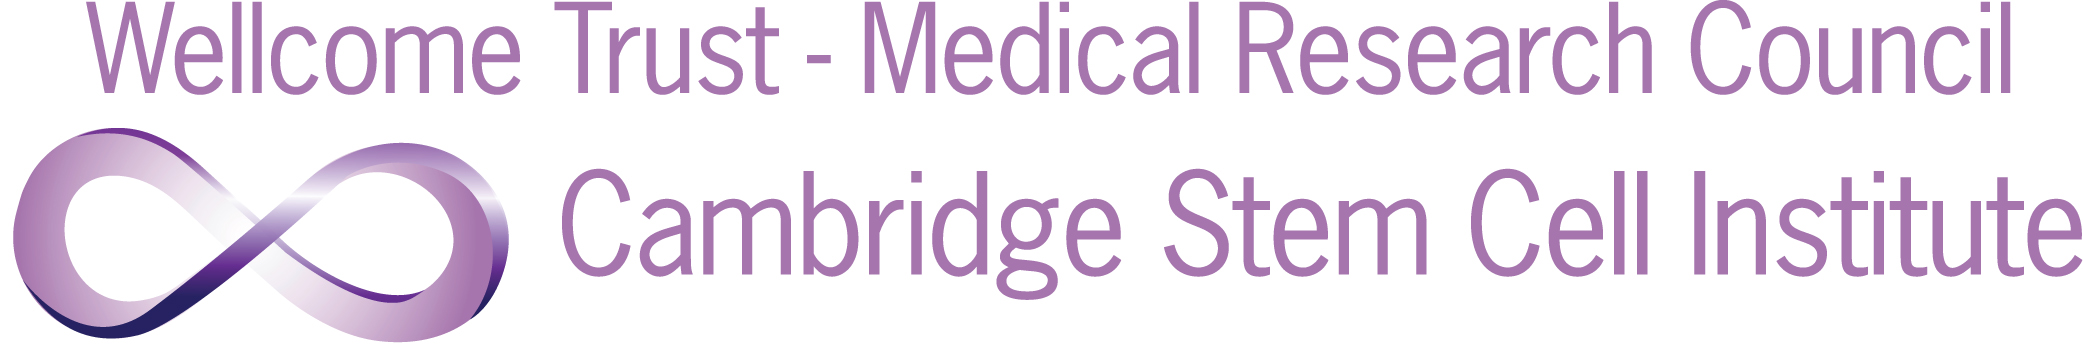 Wellcome Trust - Medical Research Council Cambridge Stem Cell Institute